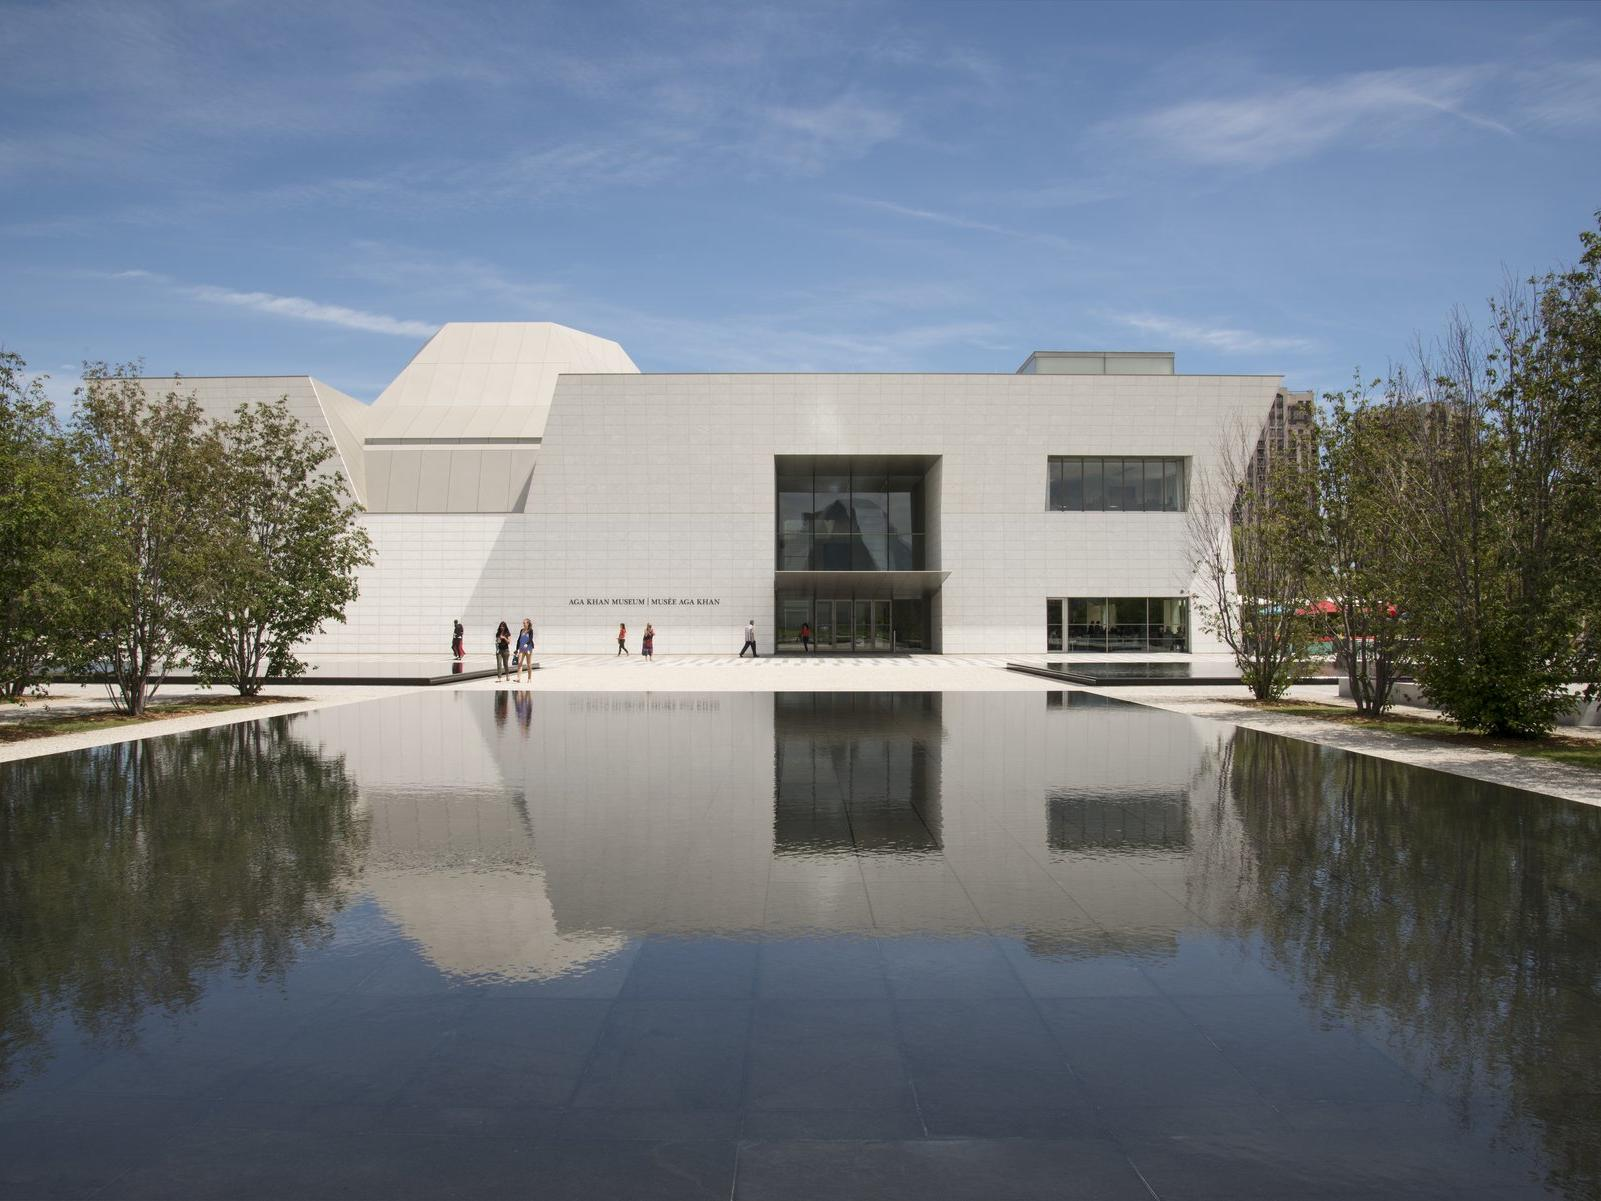 Reflecting pool in front of the Aga Khan Museum